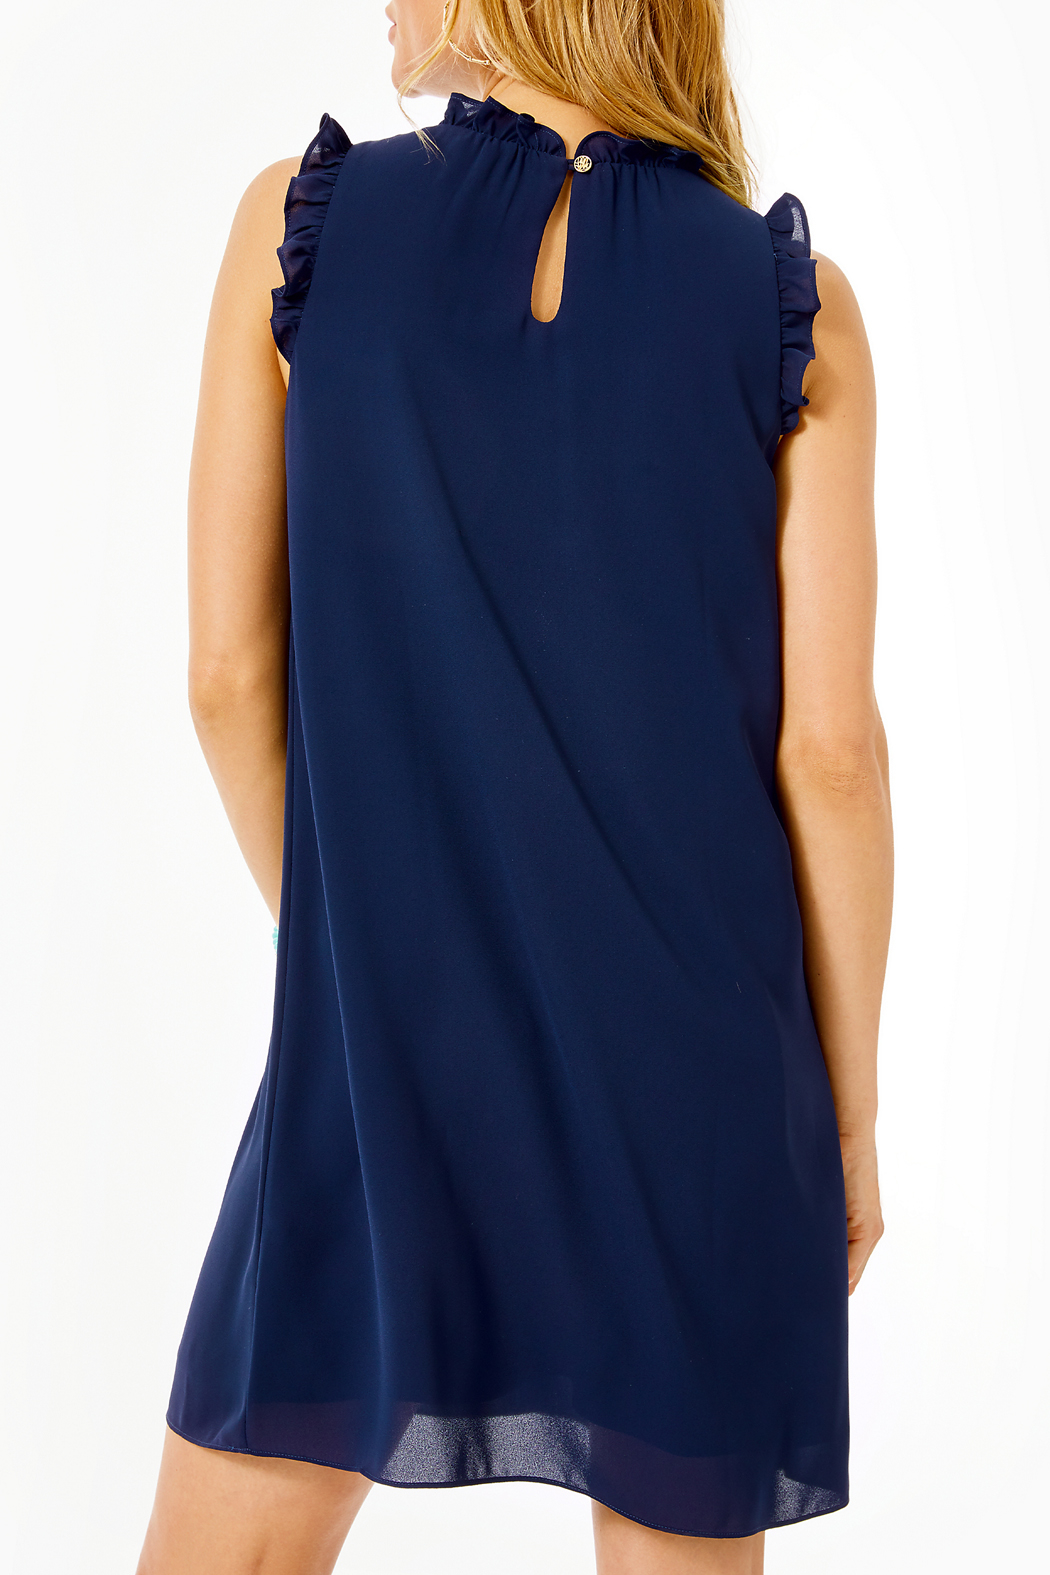 Lilly Pulitzer Talisa Dress - Side Cropped Image